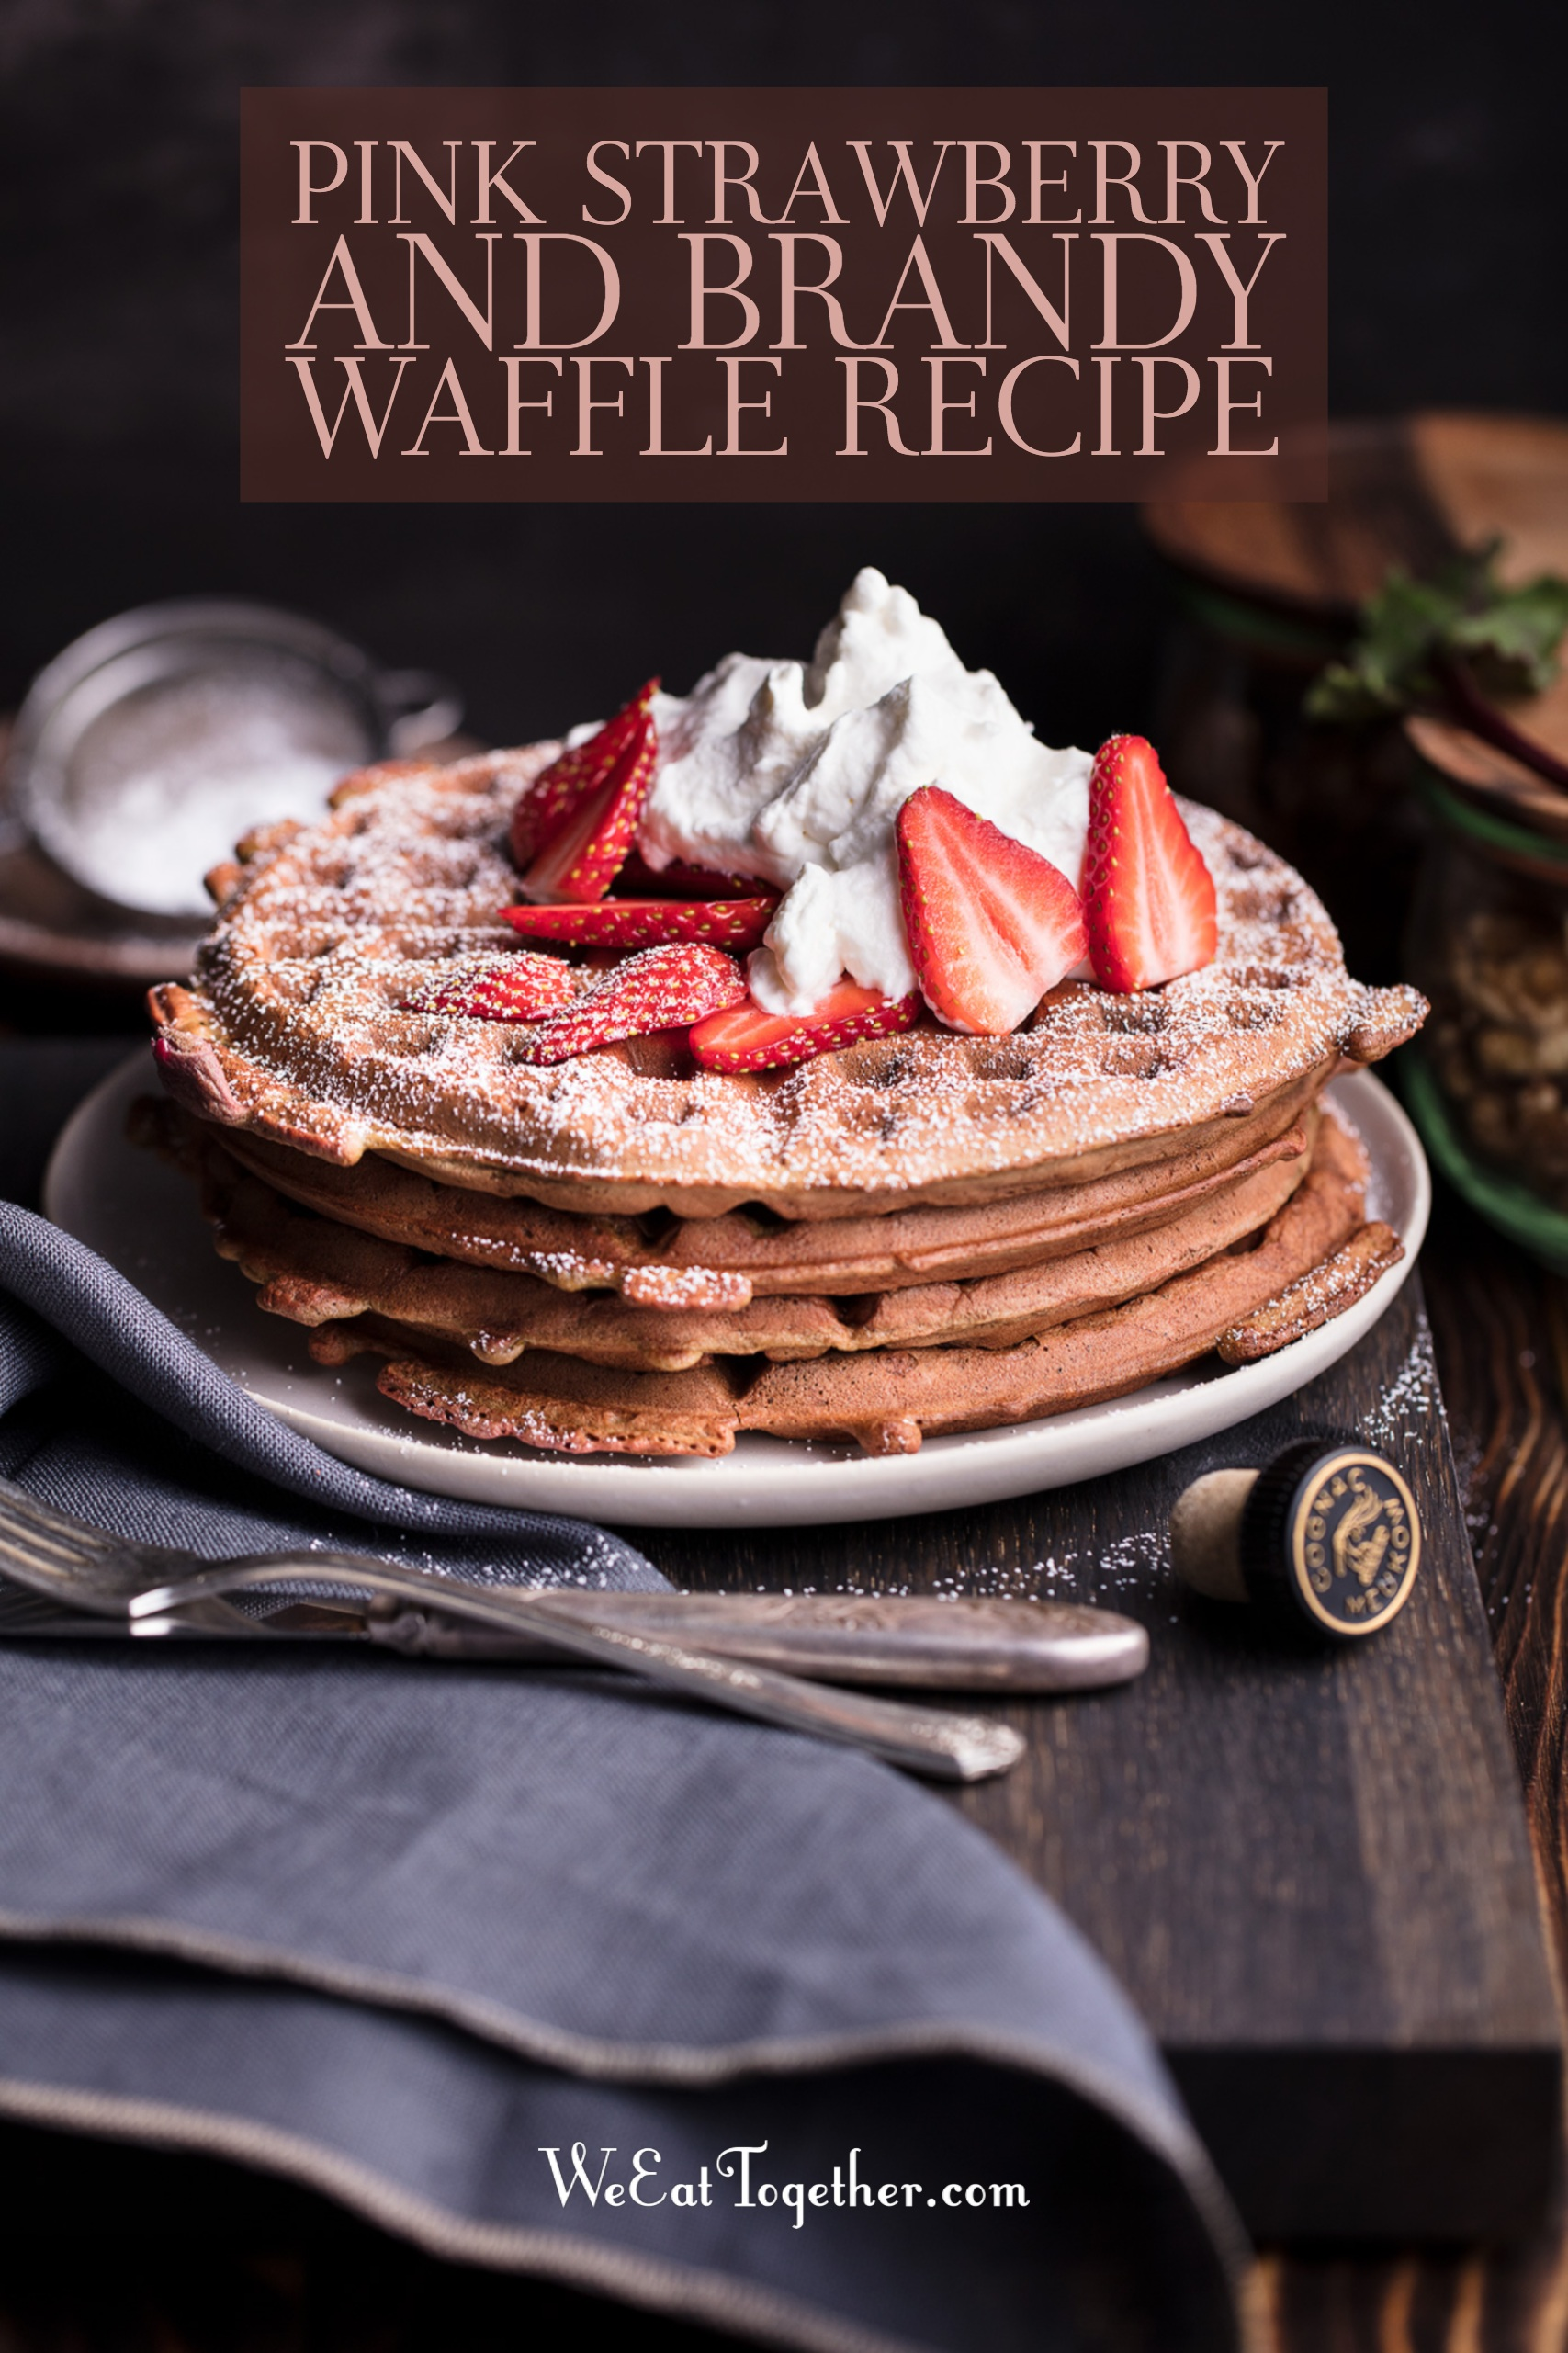 Simple Pink Strawberry And Brandy Waffle Recipe great to make on National Strawberry Day!